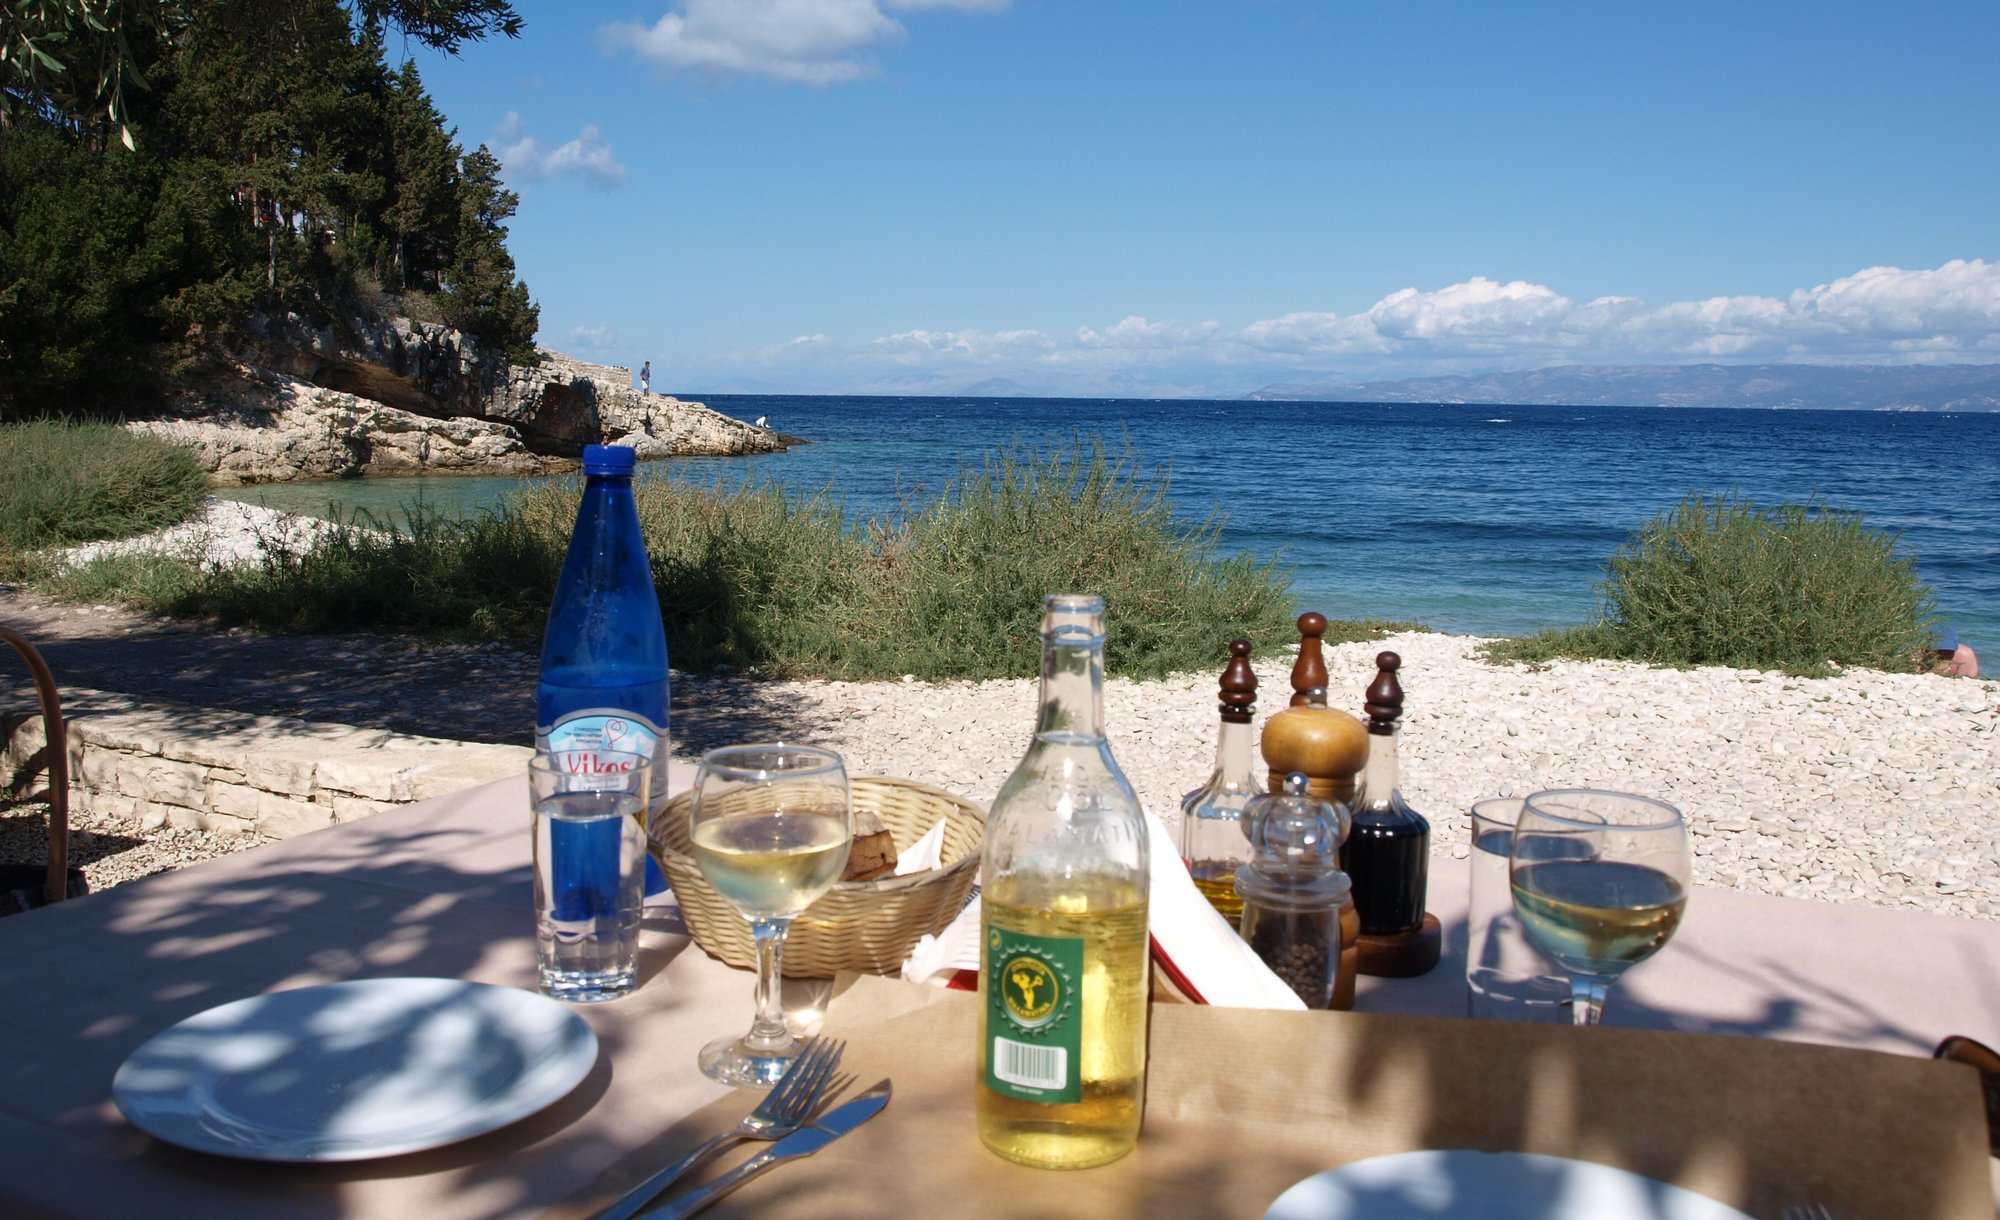 Nearby beach taverna